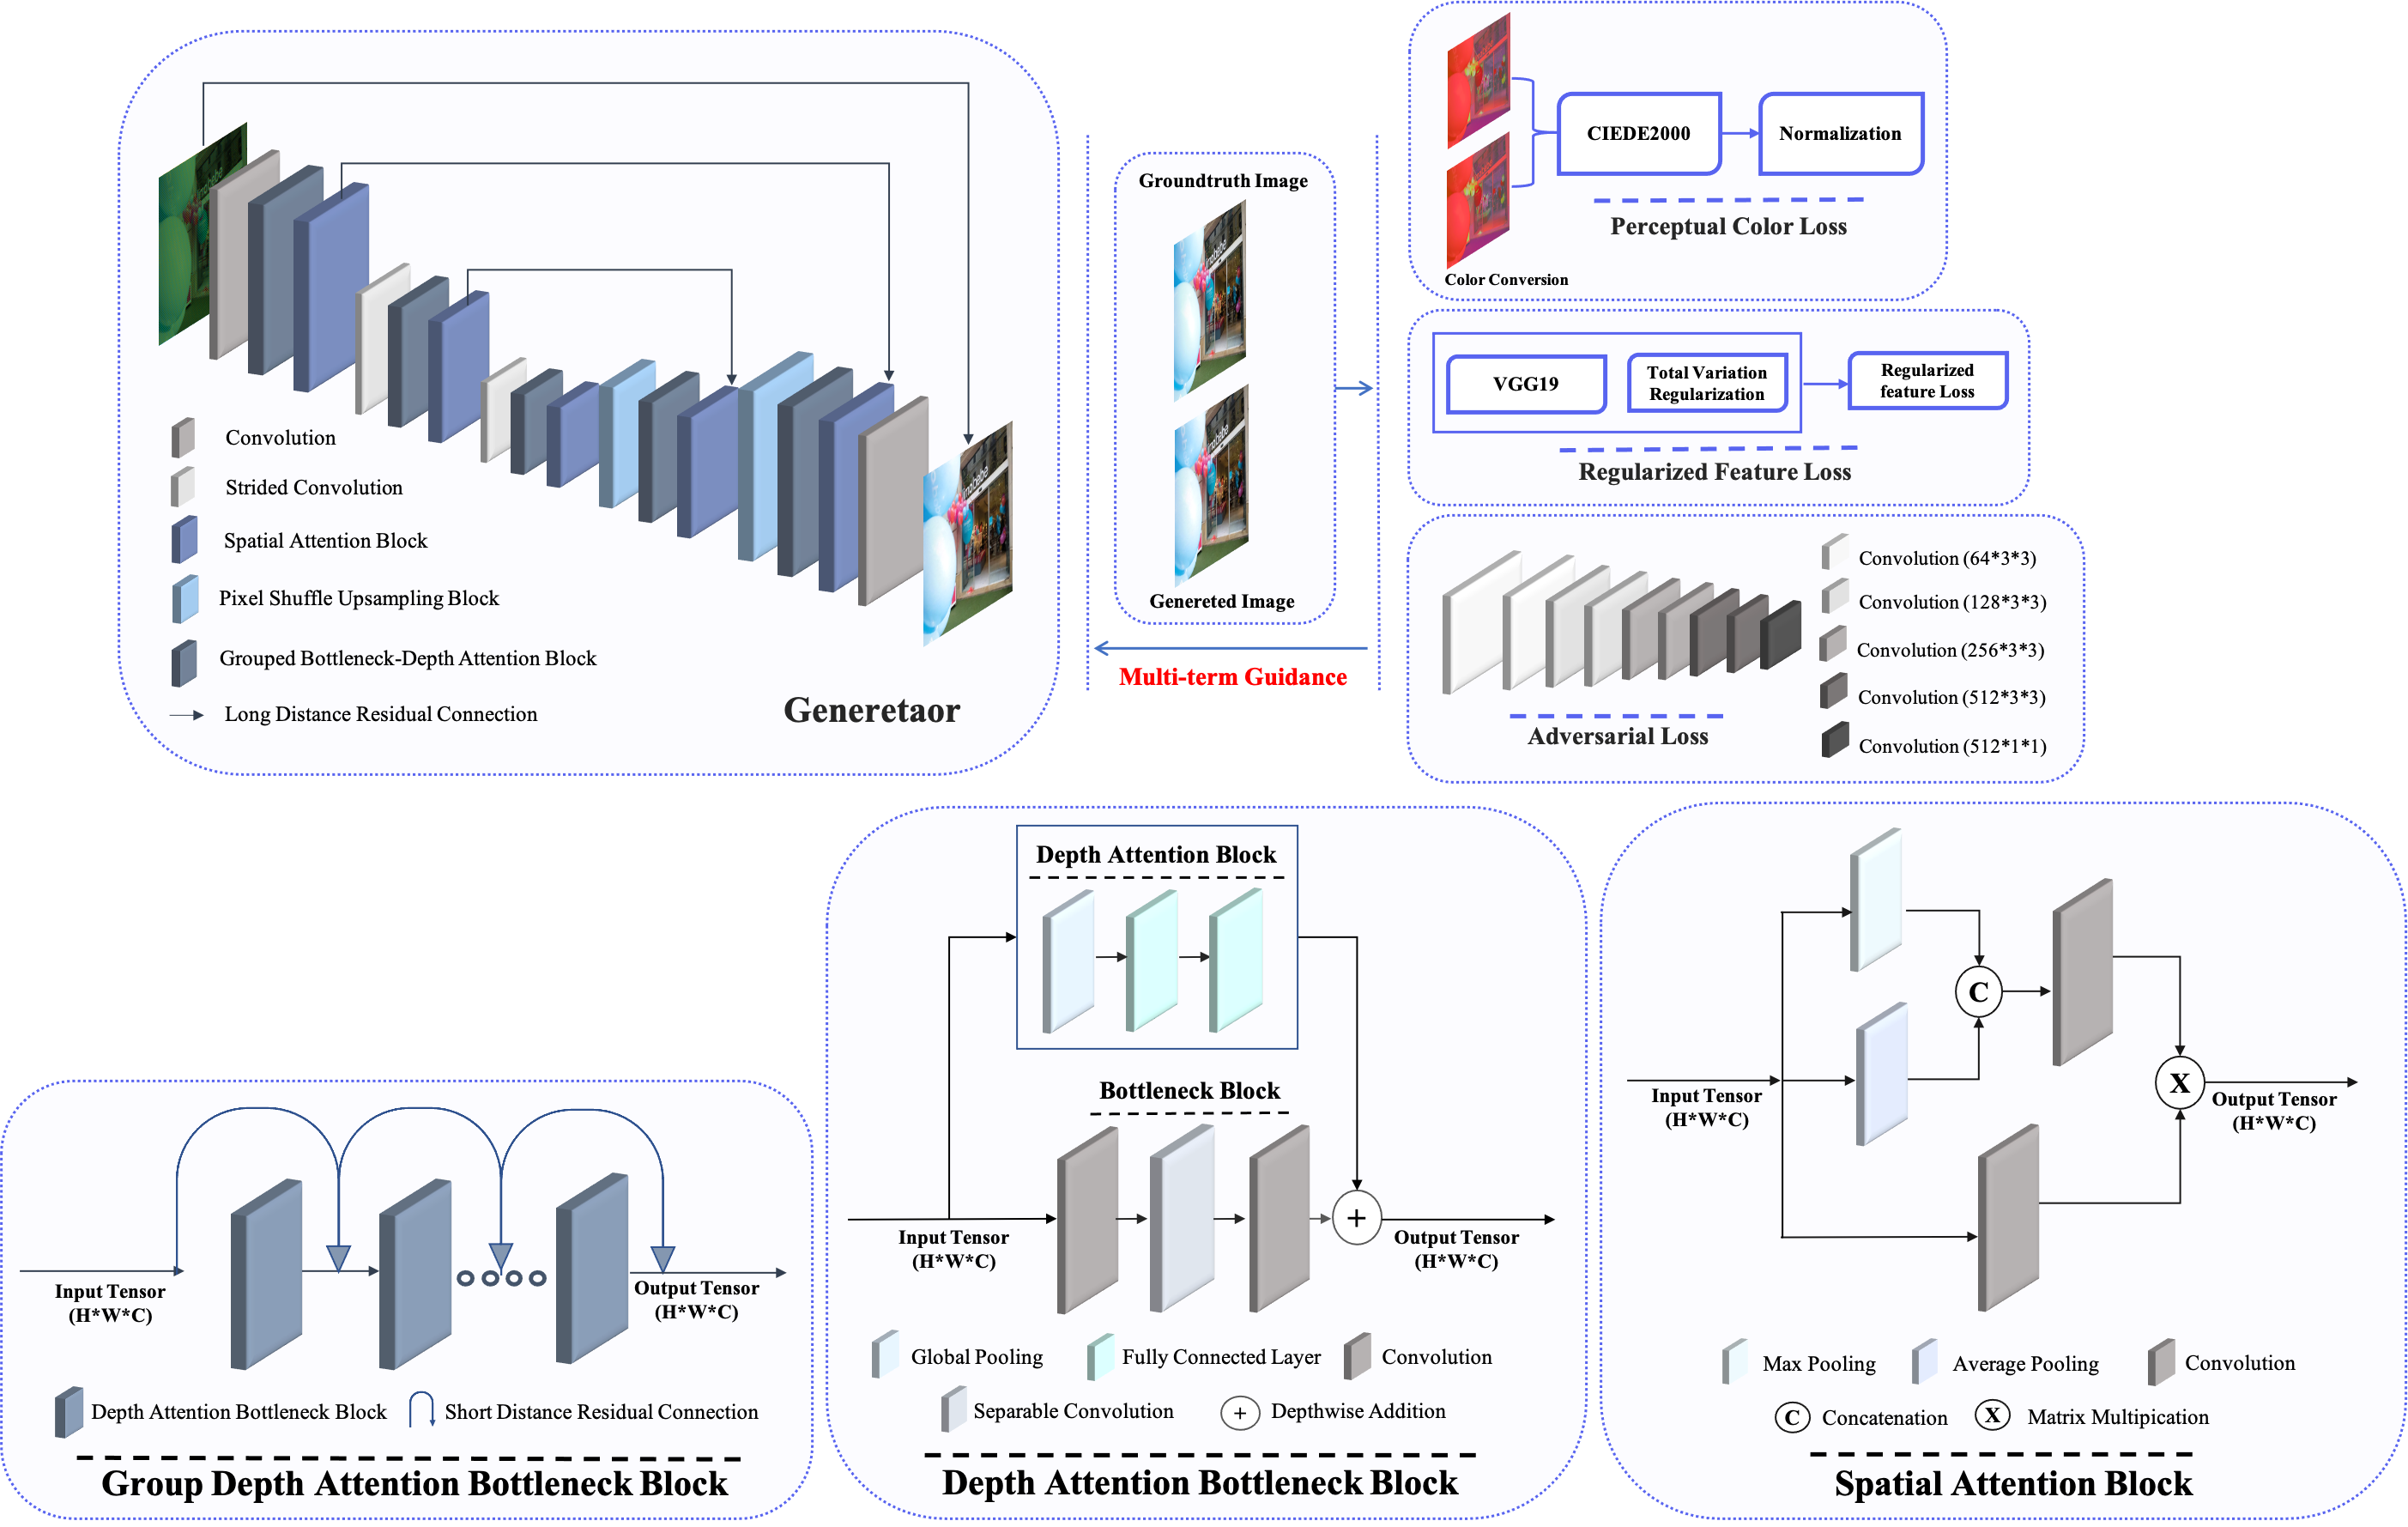 Beyond Joint Demosaicking and Denoising: An Image Processing Pipeline for a Pixel-bin Image Sensor